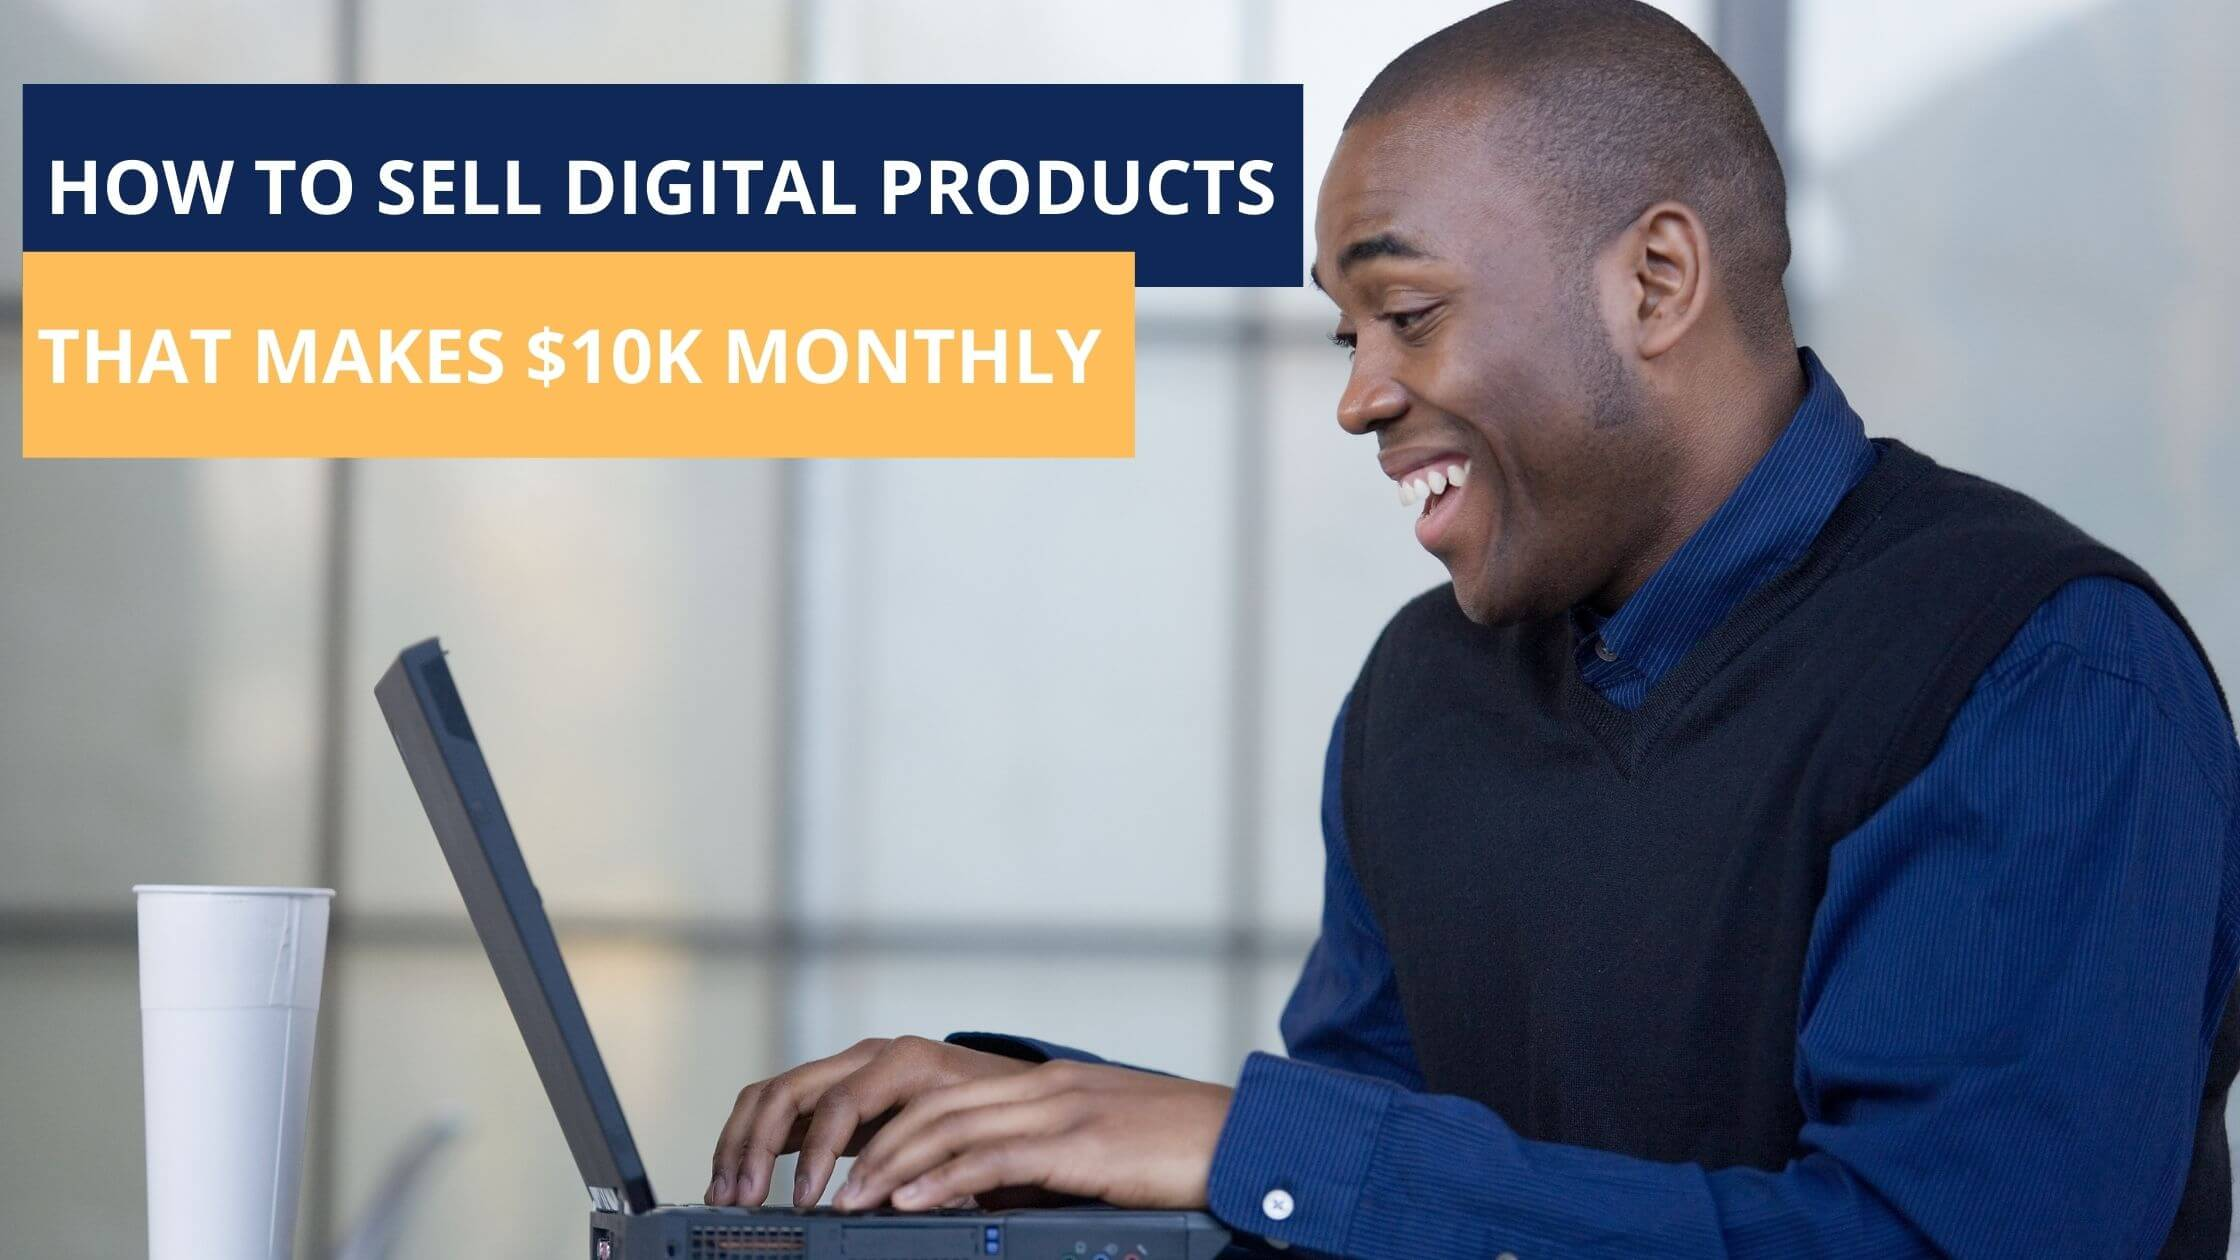 how to sell digital products in Nigeria